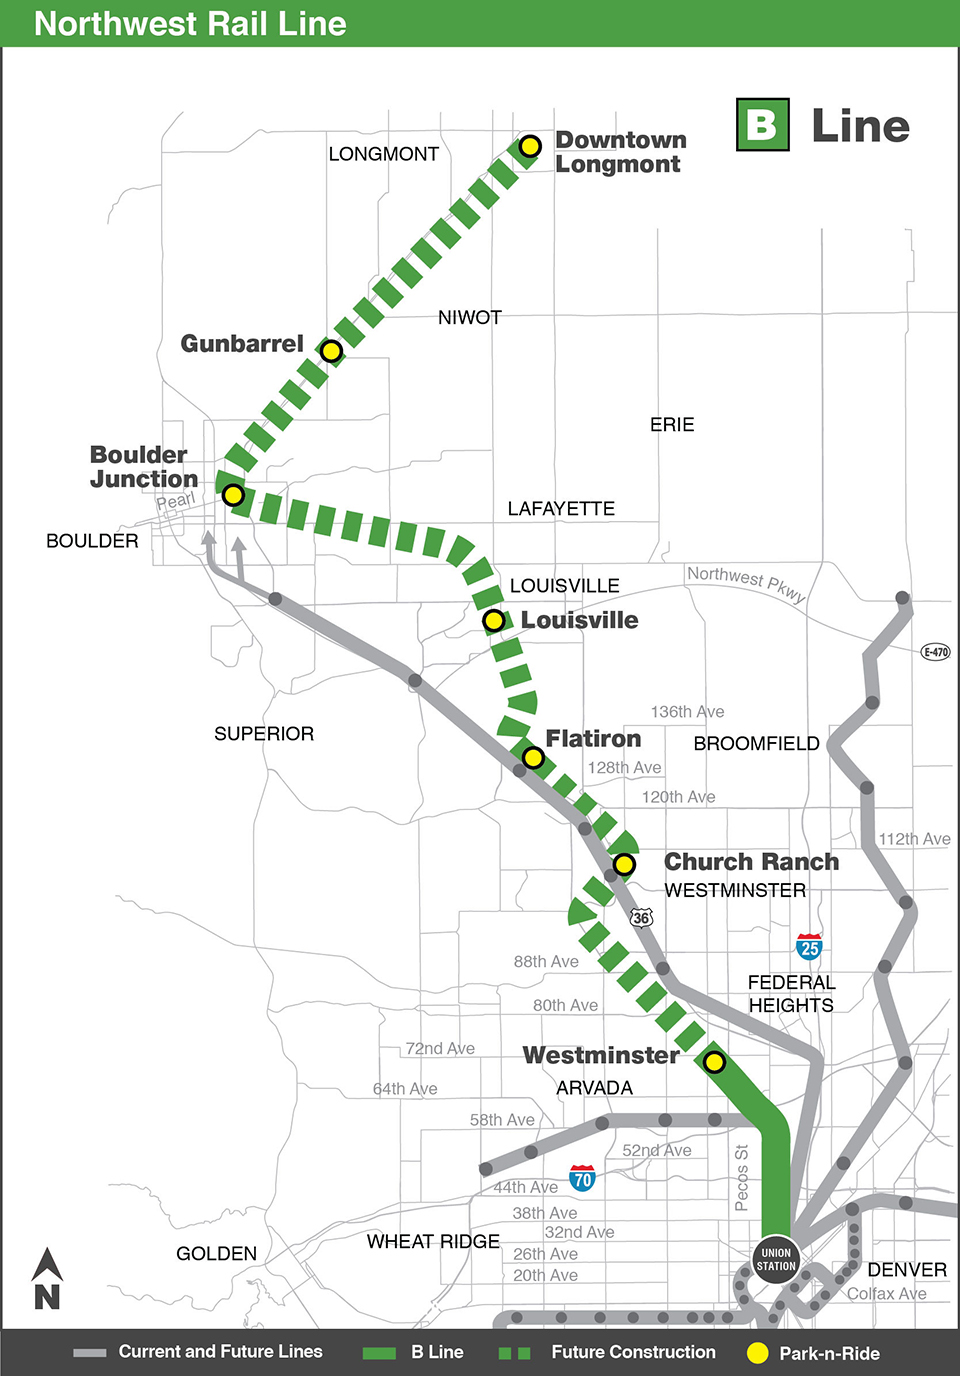 Photo: RTD B Line Northwest Corridor map